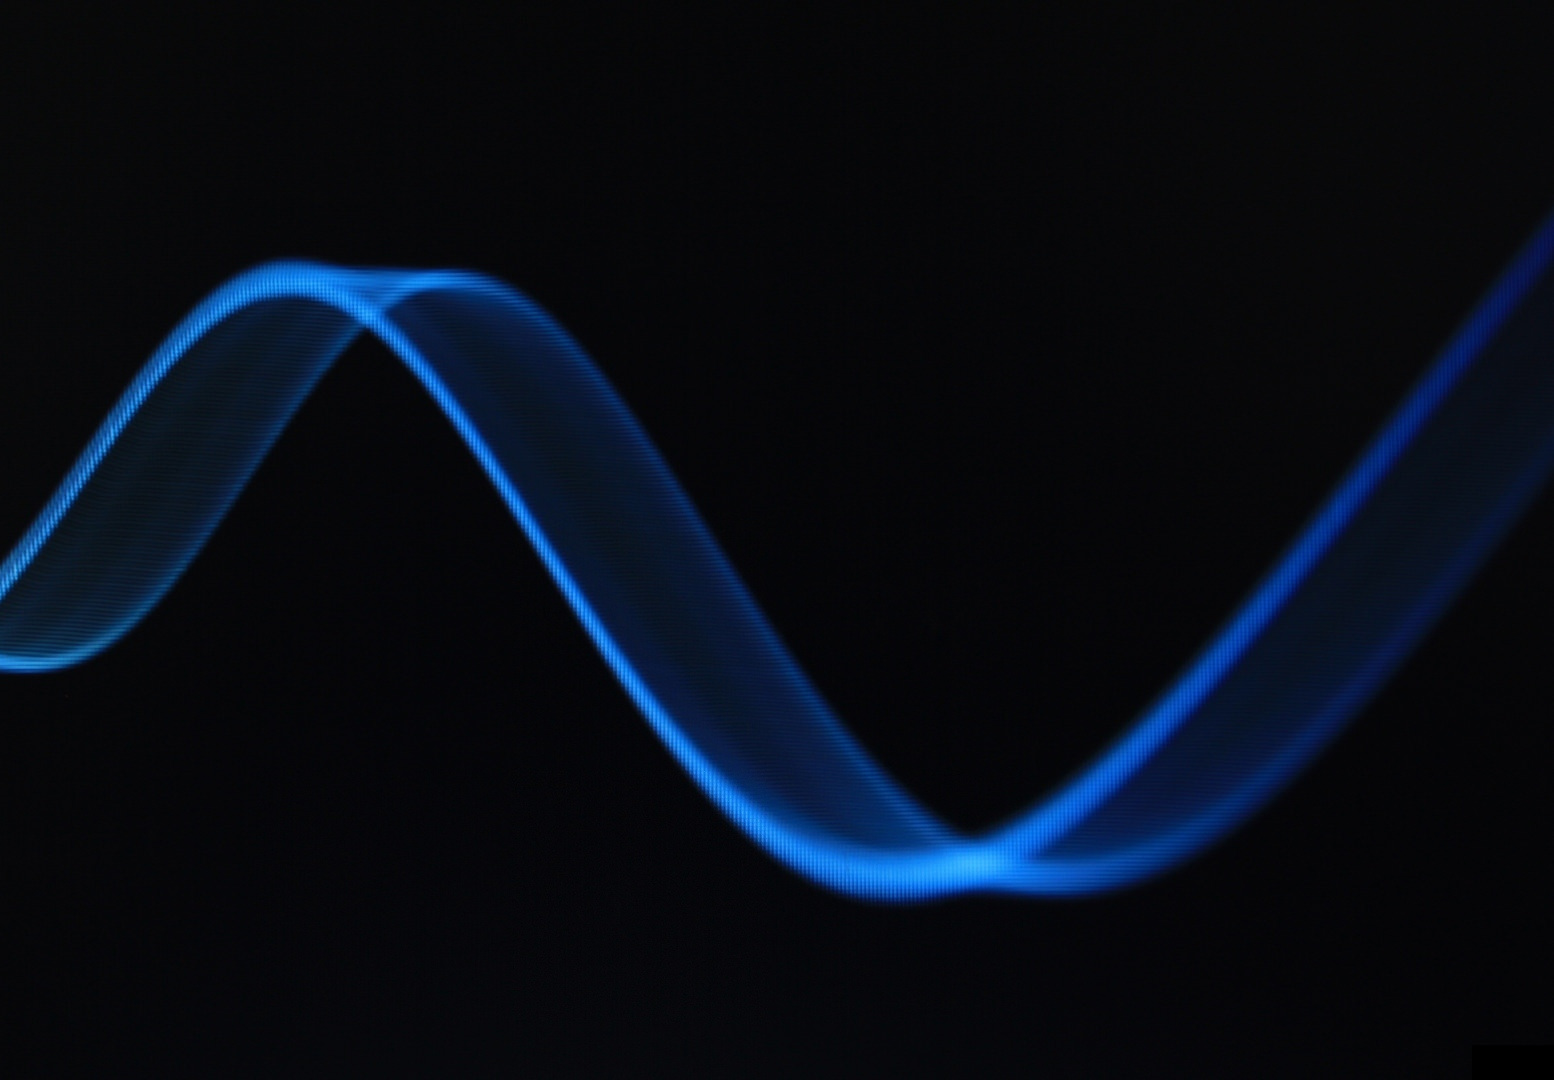 Blue Wave Line in Black Background